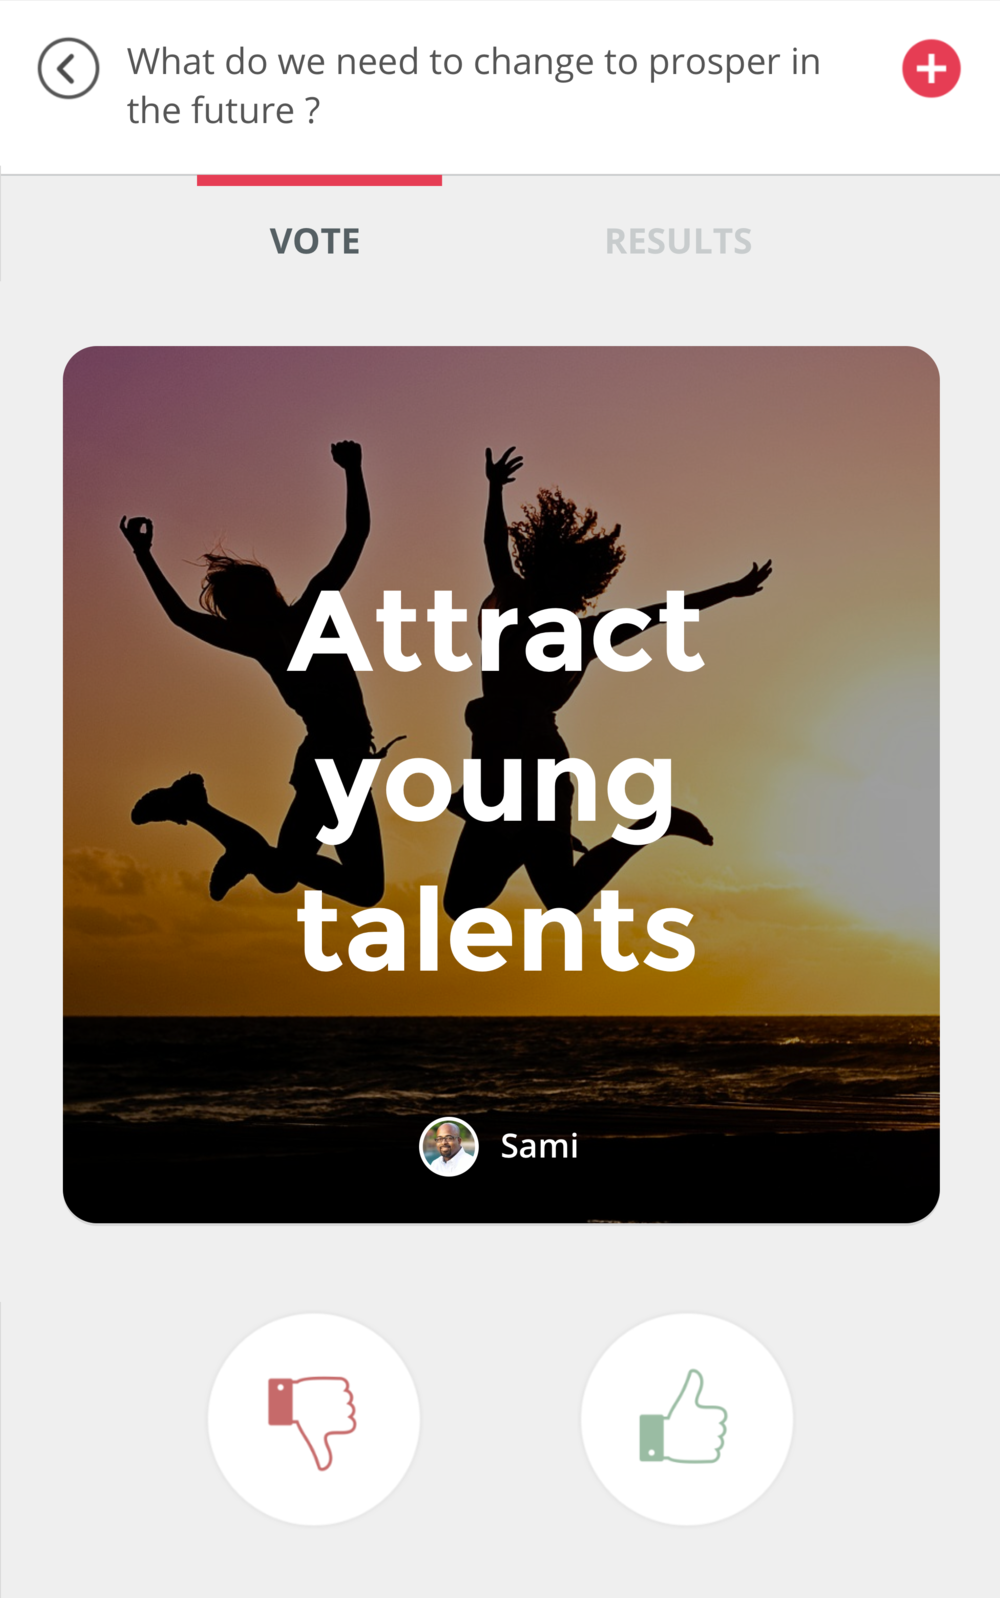 Attract young talents